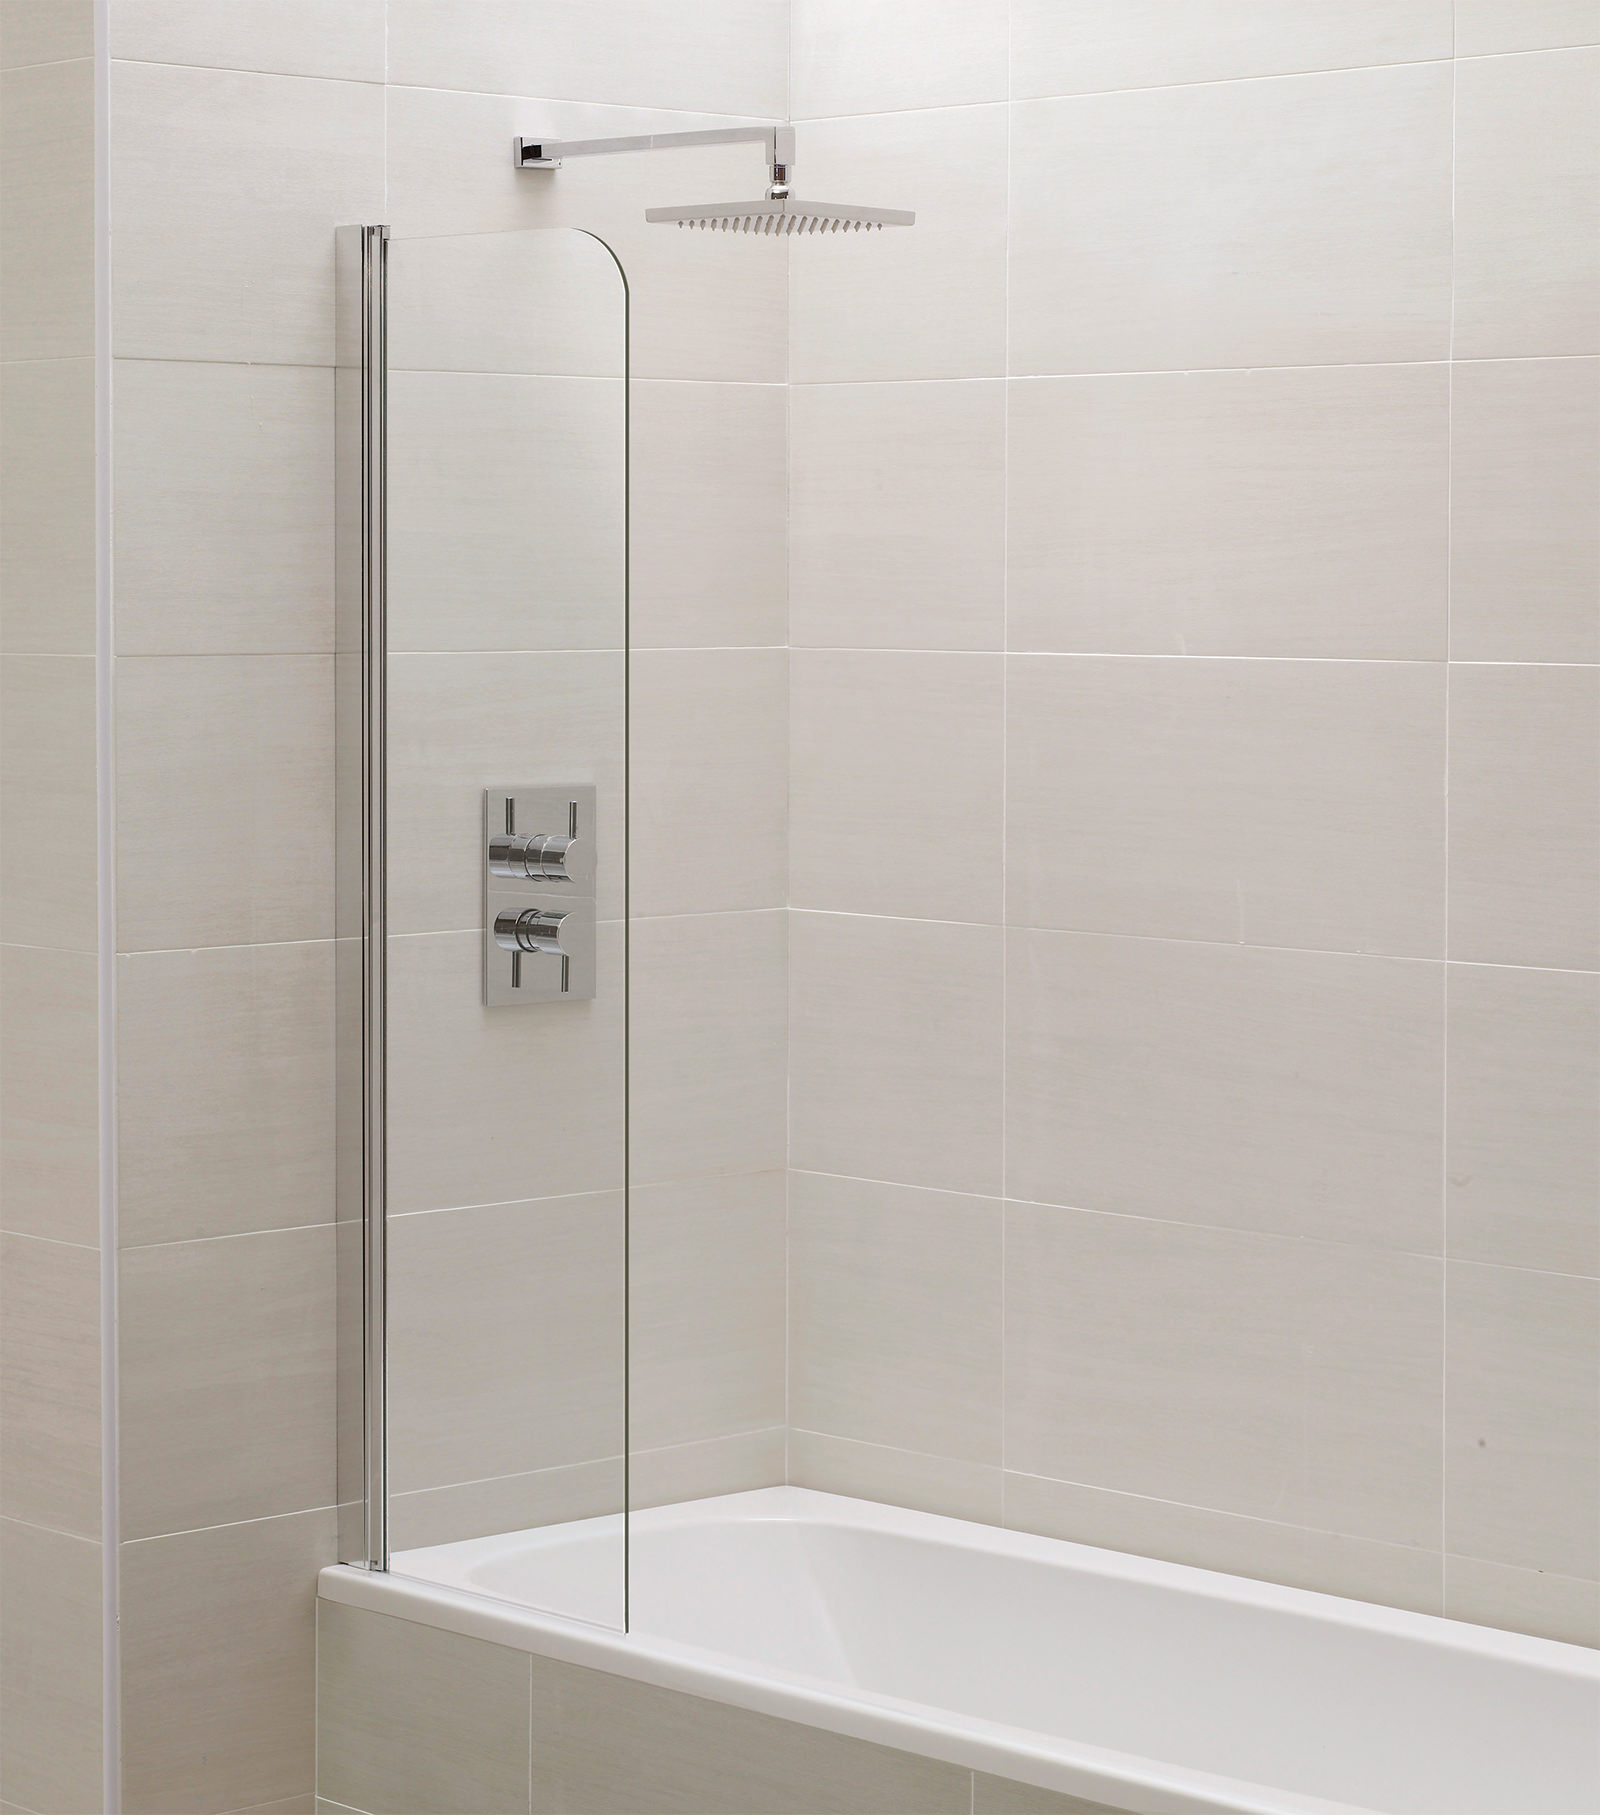 Bath Shower Screens / Sliding & Fold Screens / From £34